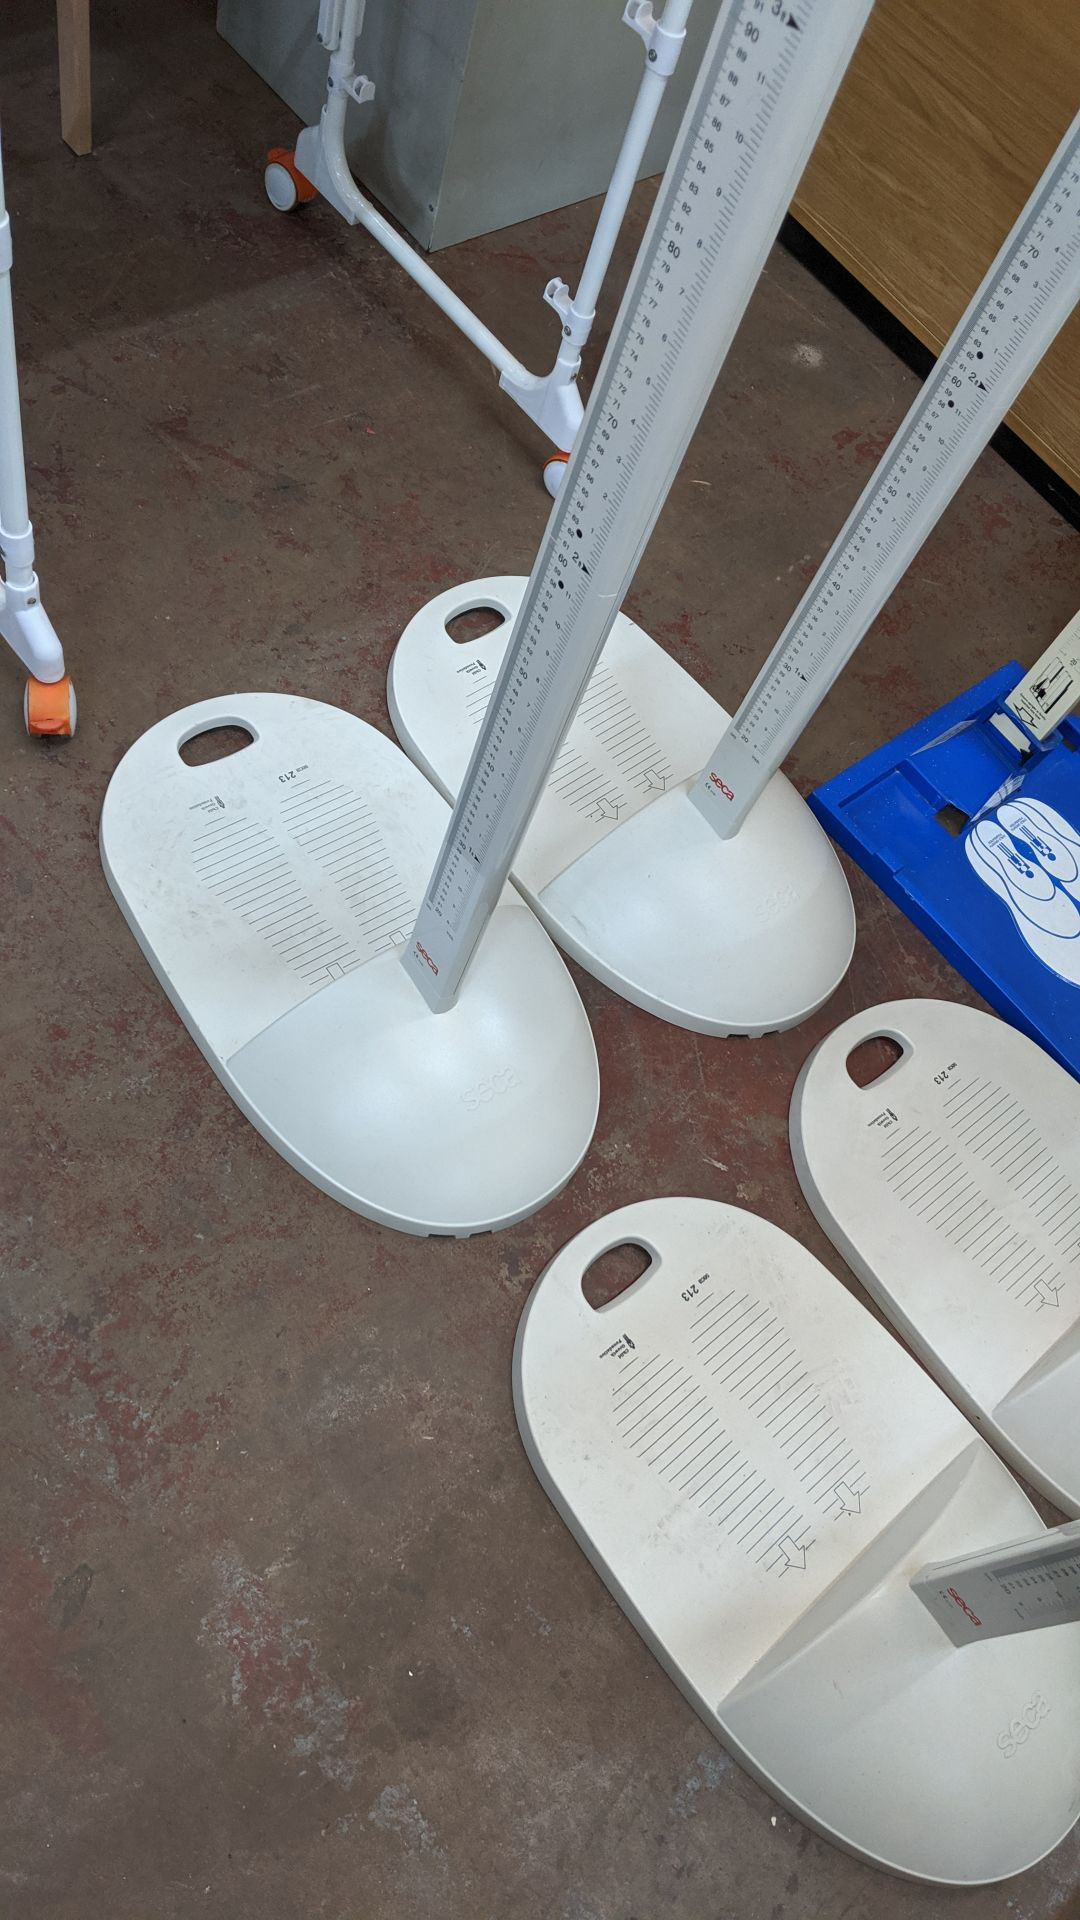 Lot 387 - 2 off Seca height measuring devices. This is one of a large number of lots used/owned by One To